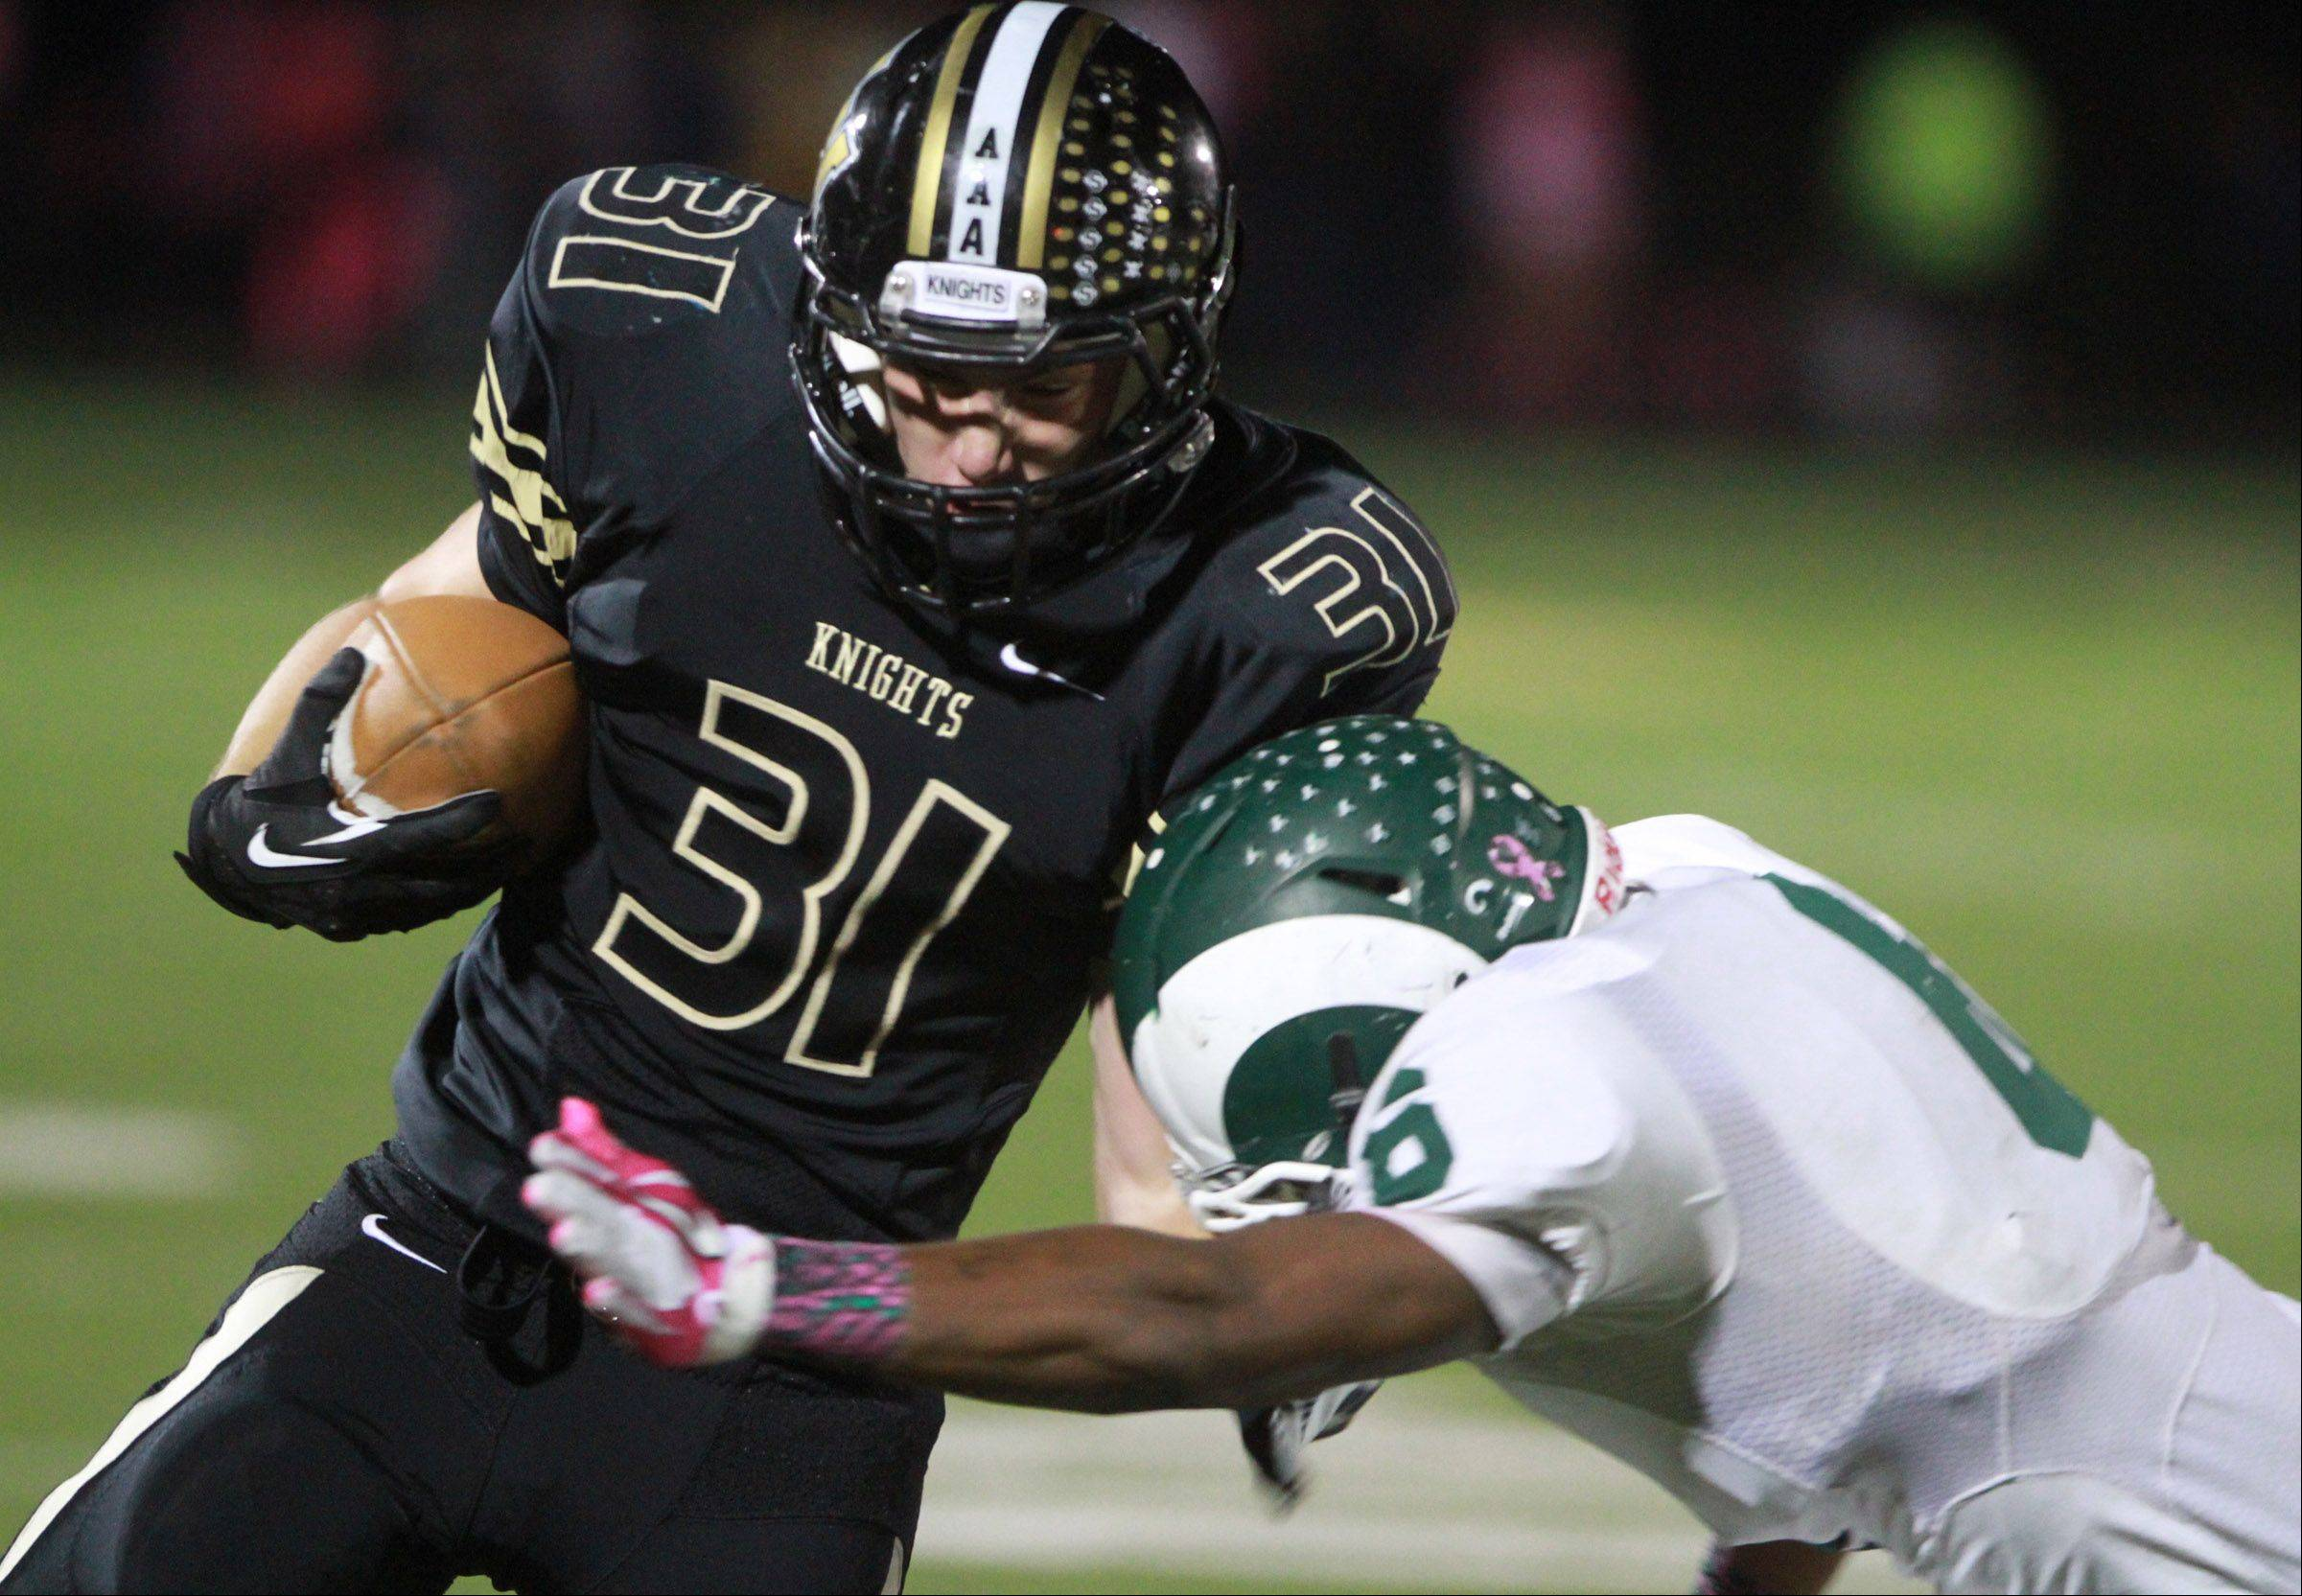 Grayslake North running back Brad Baker is pulled down by Grayslake Central linebacker Malcolm Reed.